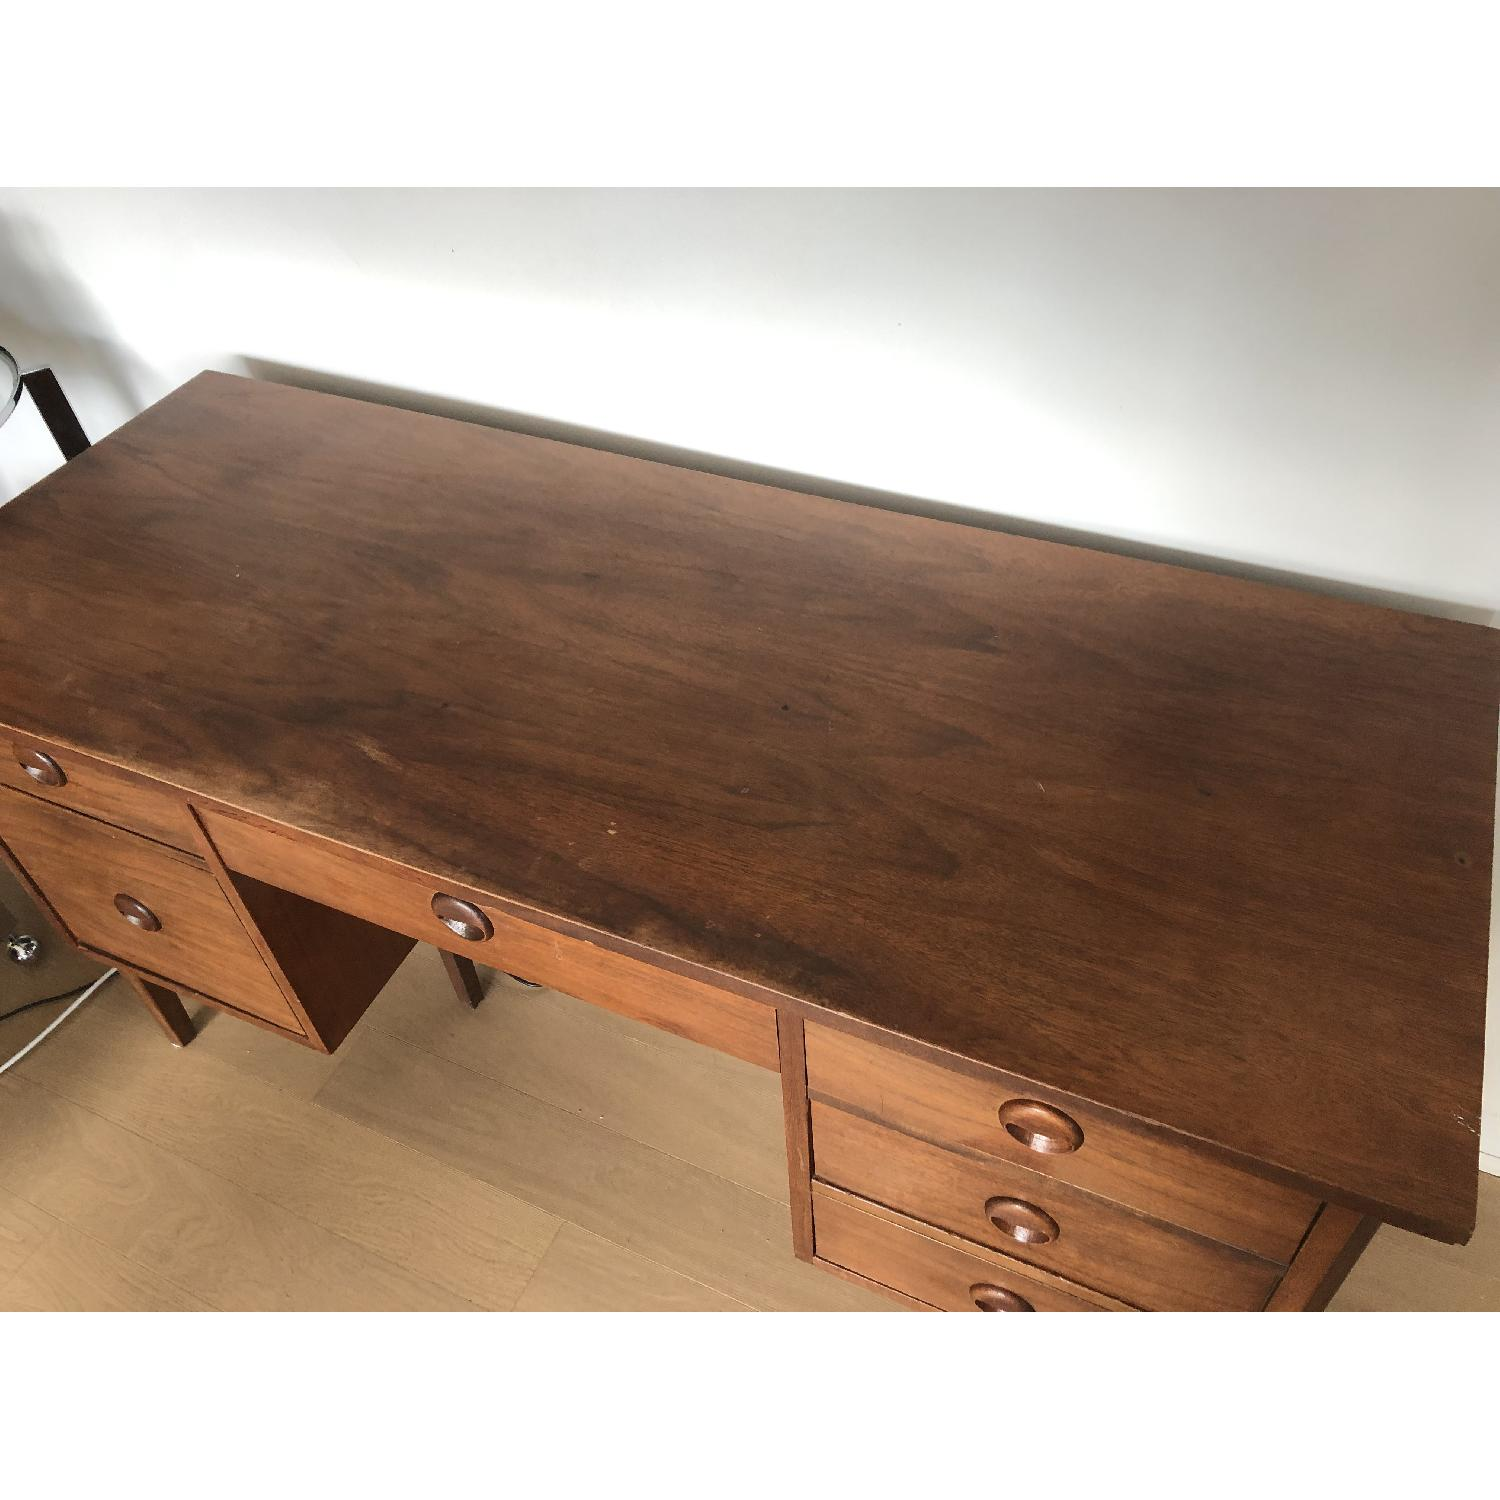 Antique Mid-Century Modern Desk-4